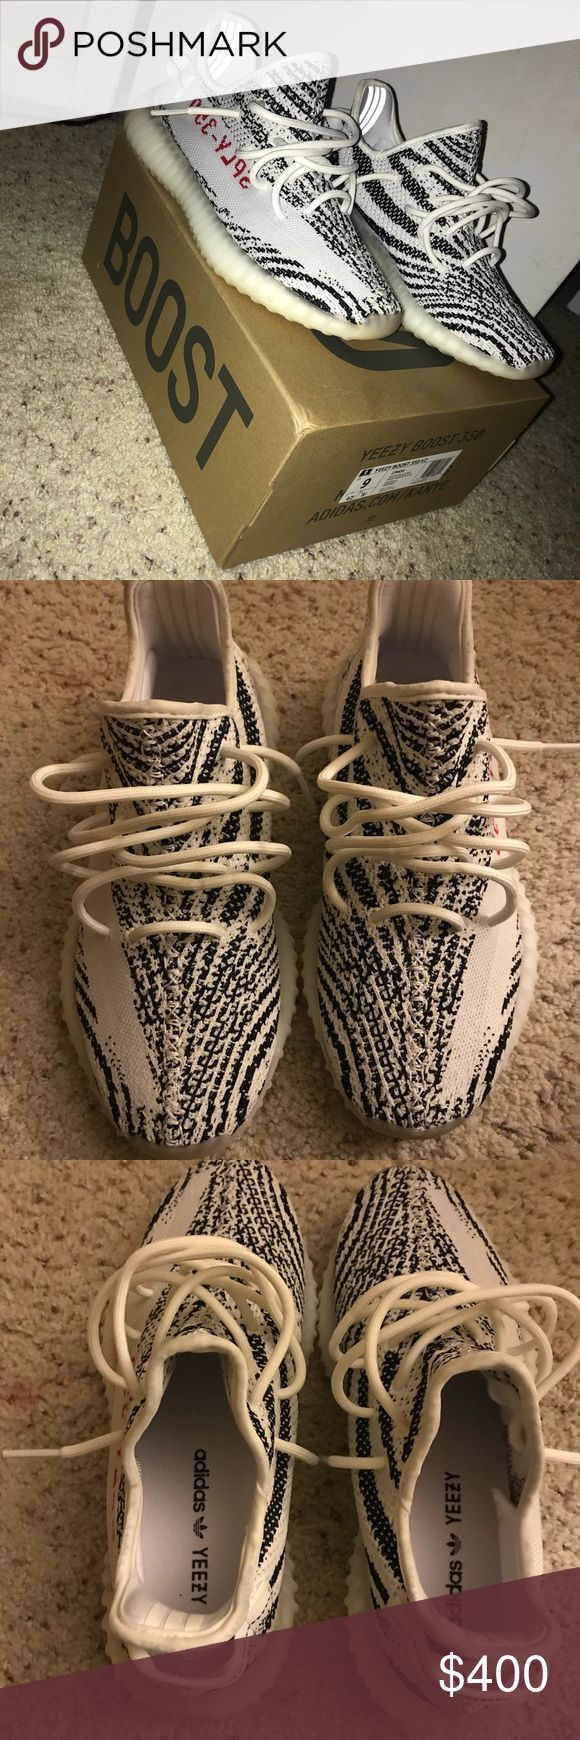 Authentic Zebra Yeezy 350 Boost V2 Worn a few times and still in phenomenal condition. Paid 600 at flight club. Only comes with shoes and box, my dog tore up the original paper sorry. If you're gonna make accusations of fakes please just leave thank you. Dropping price low due to tattoo appointee next week must go ASAP Yeezy Shoes Sneakers